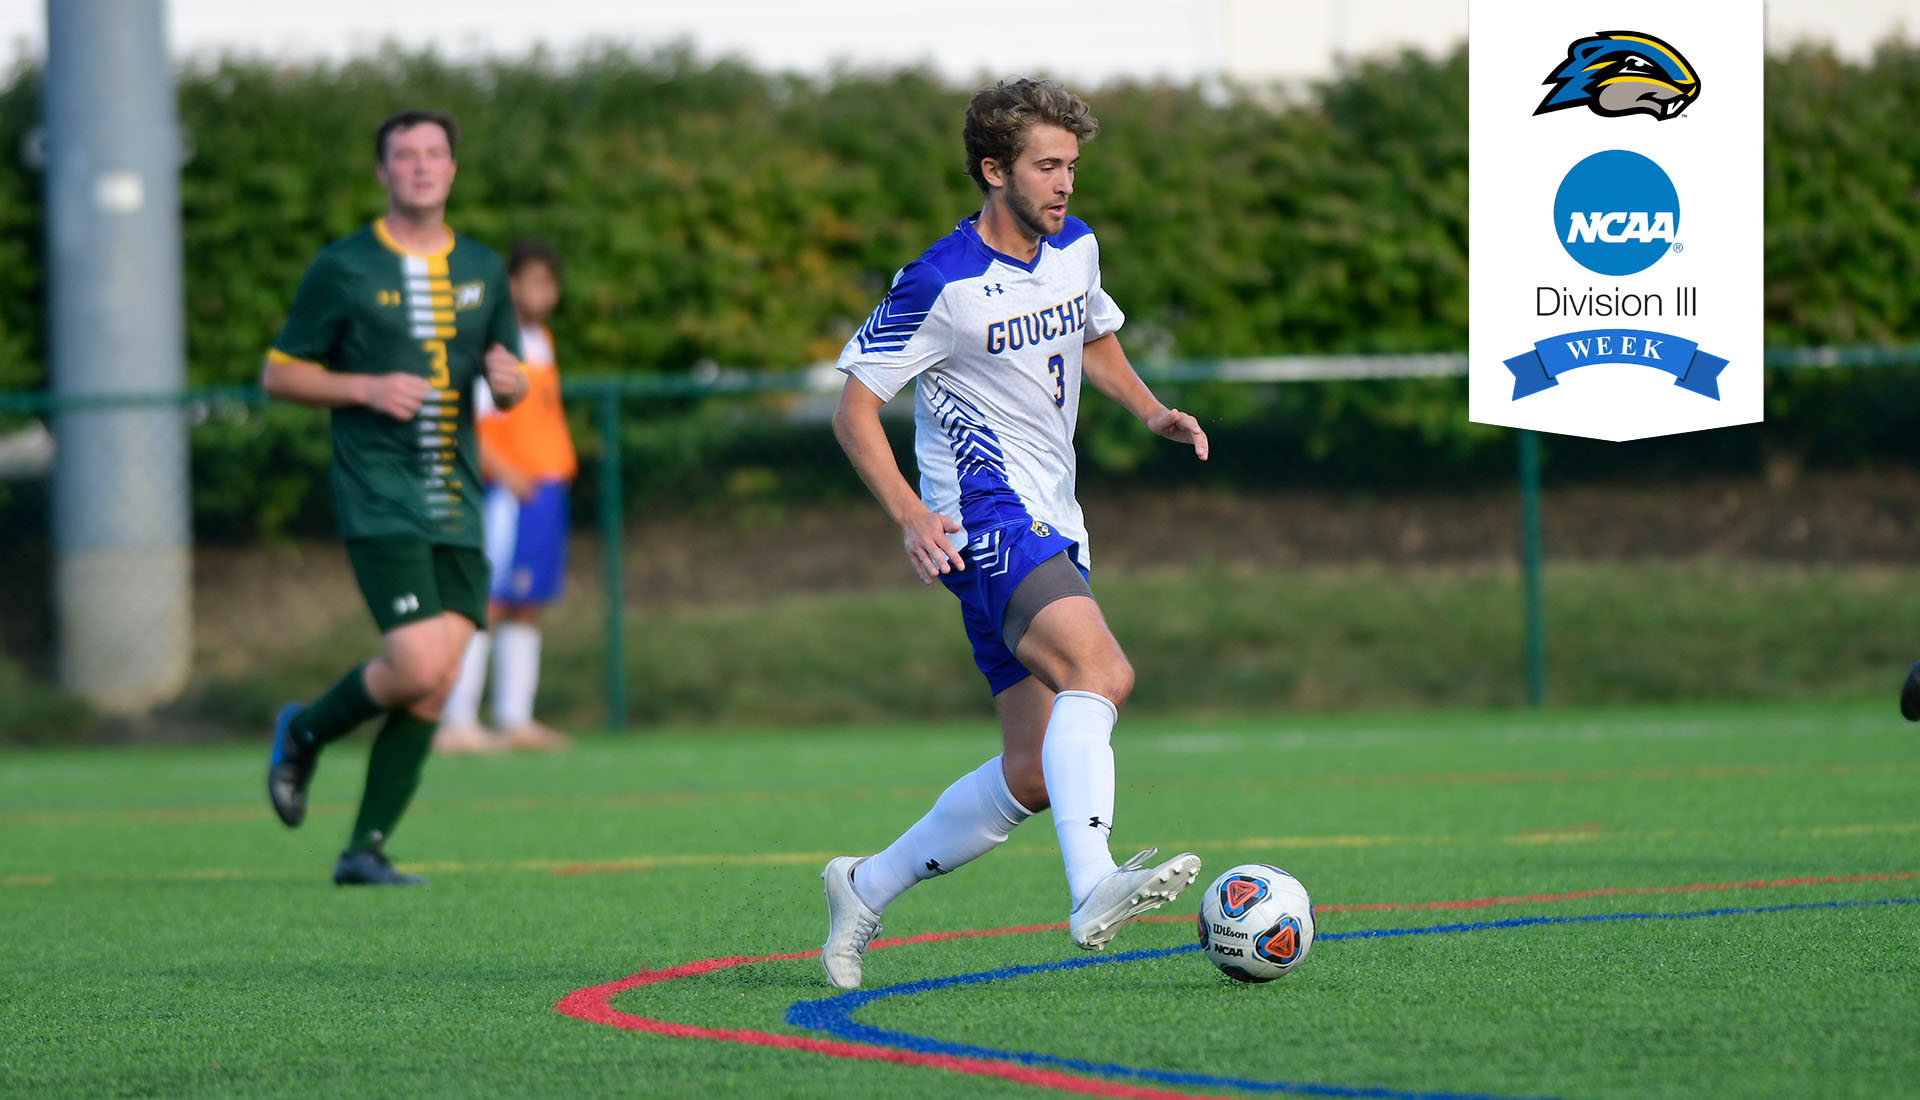 NCAA Division III Week: Question & Answers With Goucher Men's Soccer Sophomore Zach LaFaver